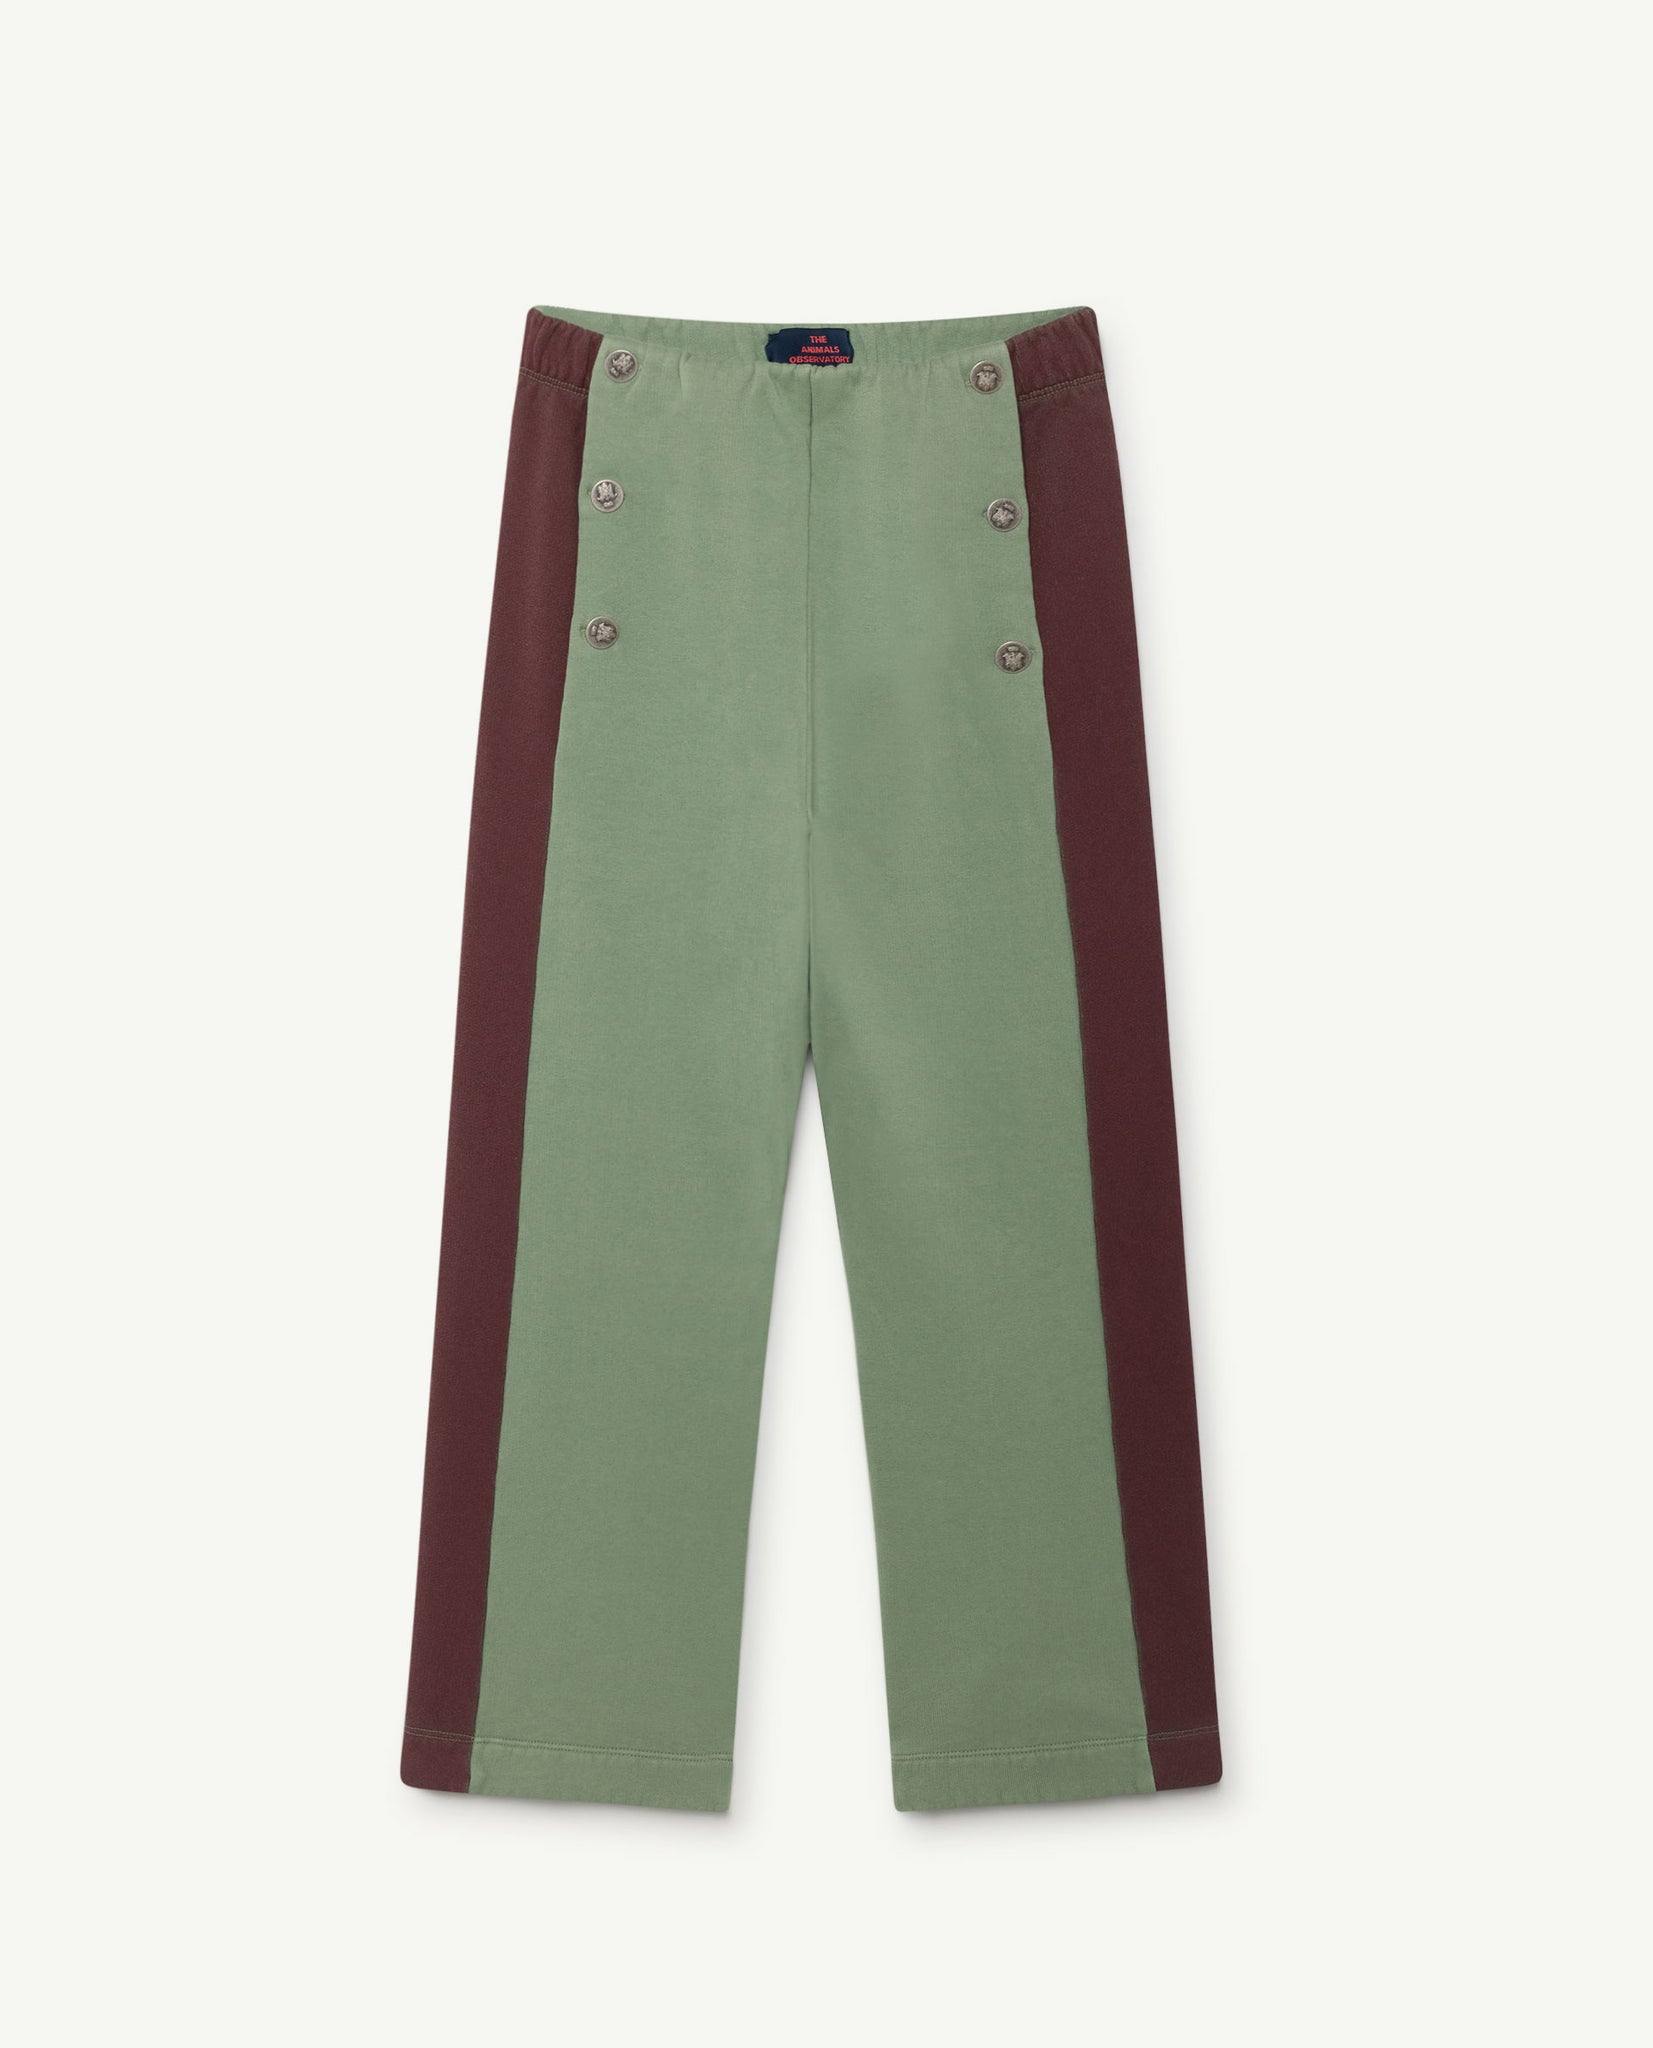 Magpie kids pants - grey/red